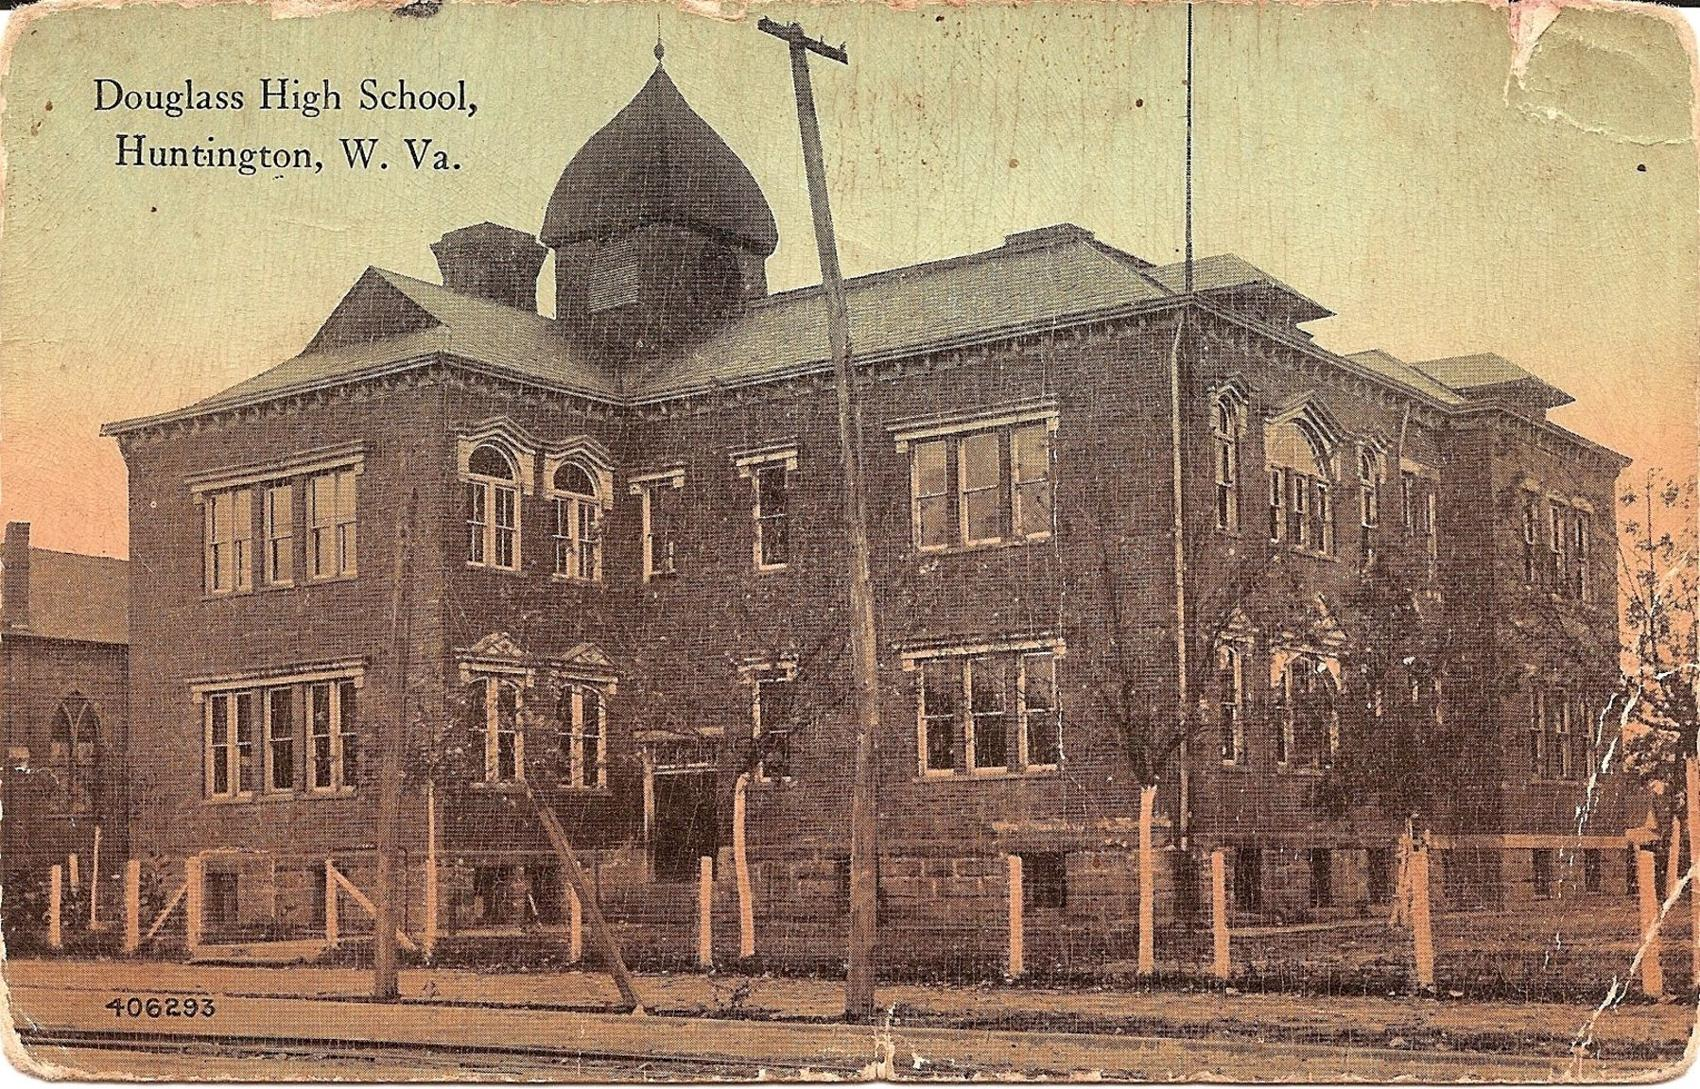 The original Douglass School